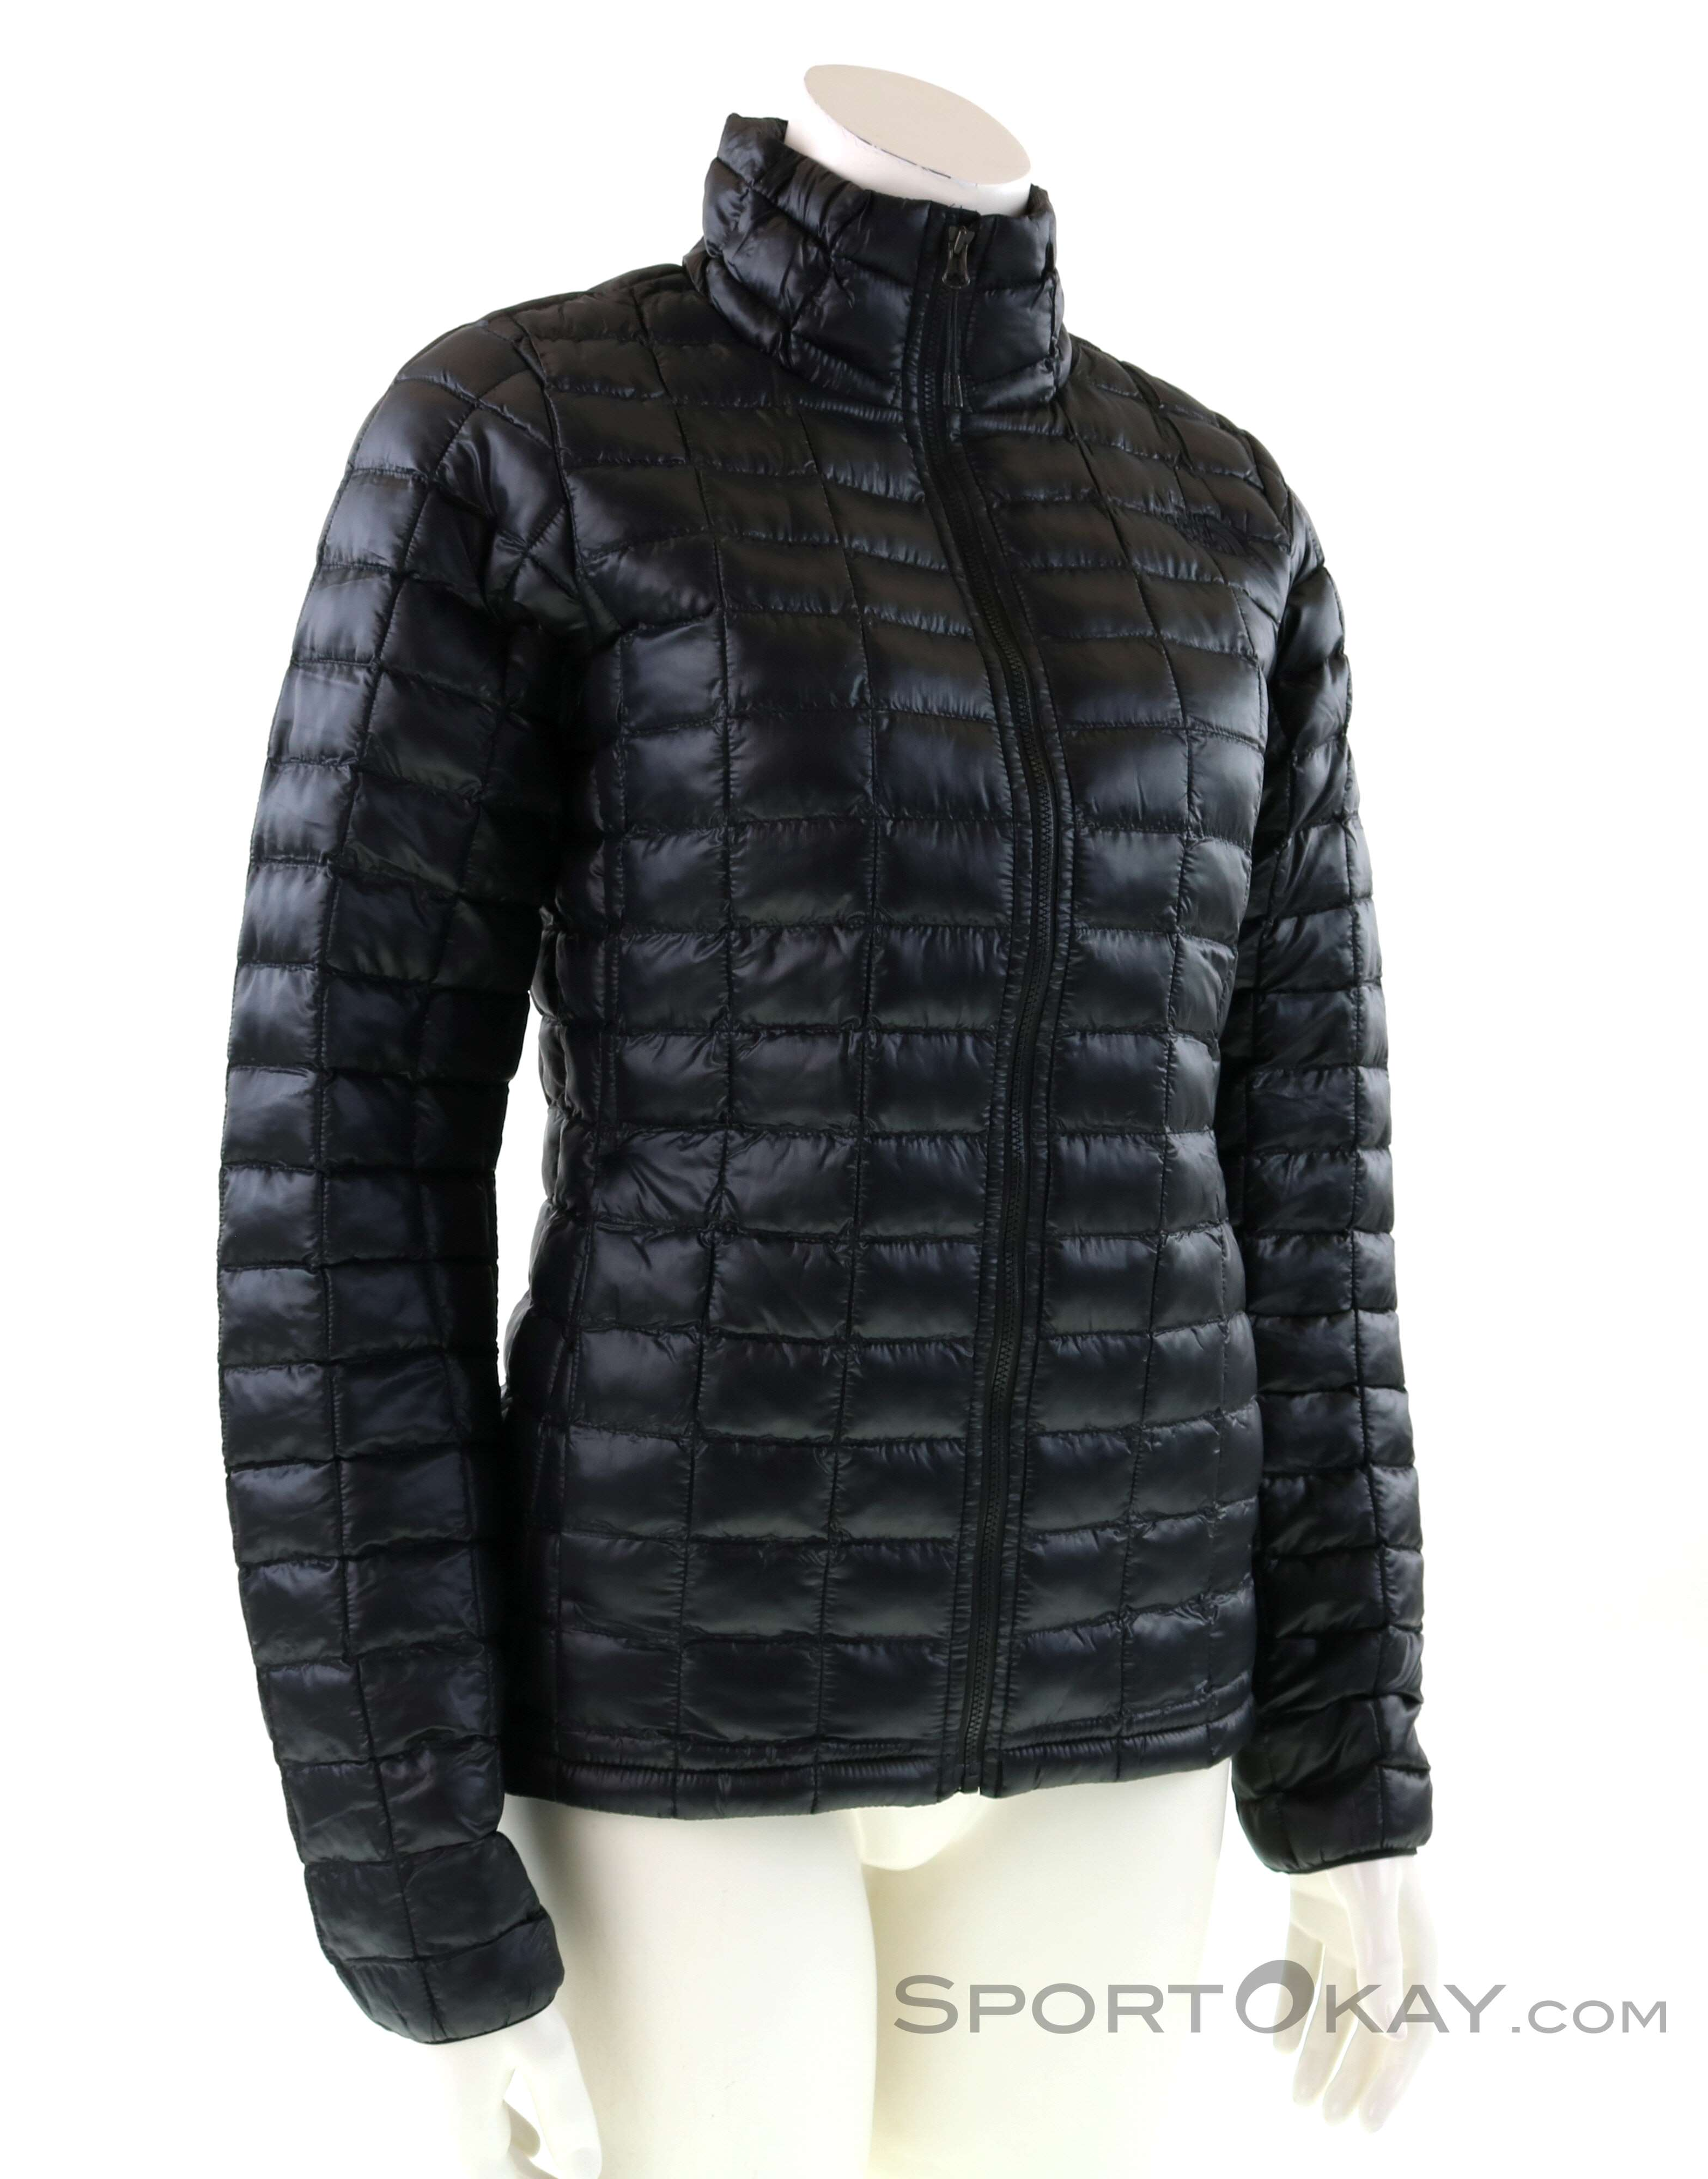 Thermoball Eco Jacket Outdoor The North Face Womens rWCeoQBxd